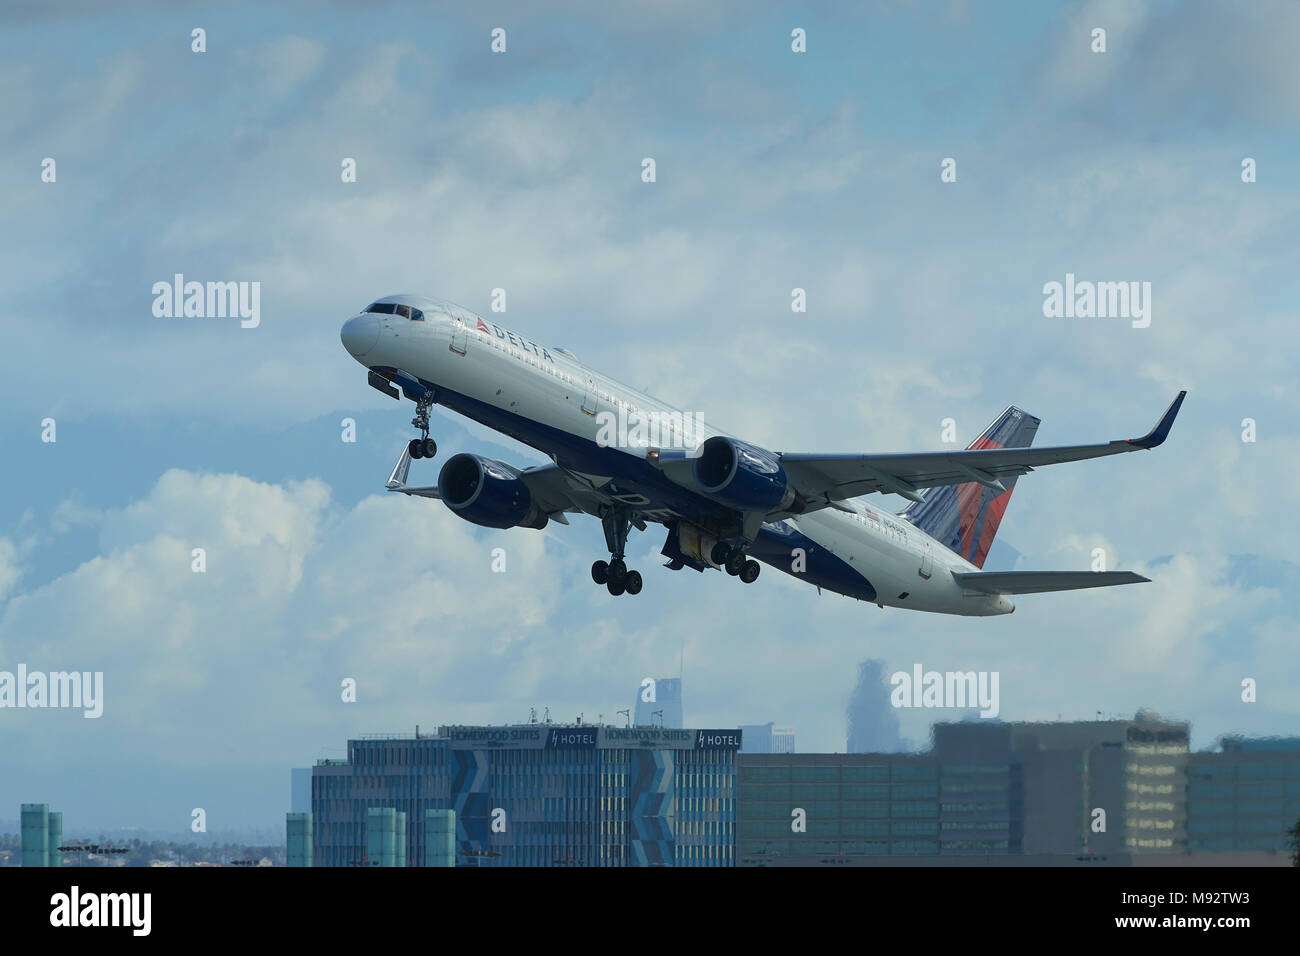 Delta Air Lines Boeing 757 Jet Airliner, Climbing Away From Los Angeles International Airport, LAX, California, USA. Stock Photo